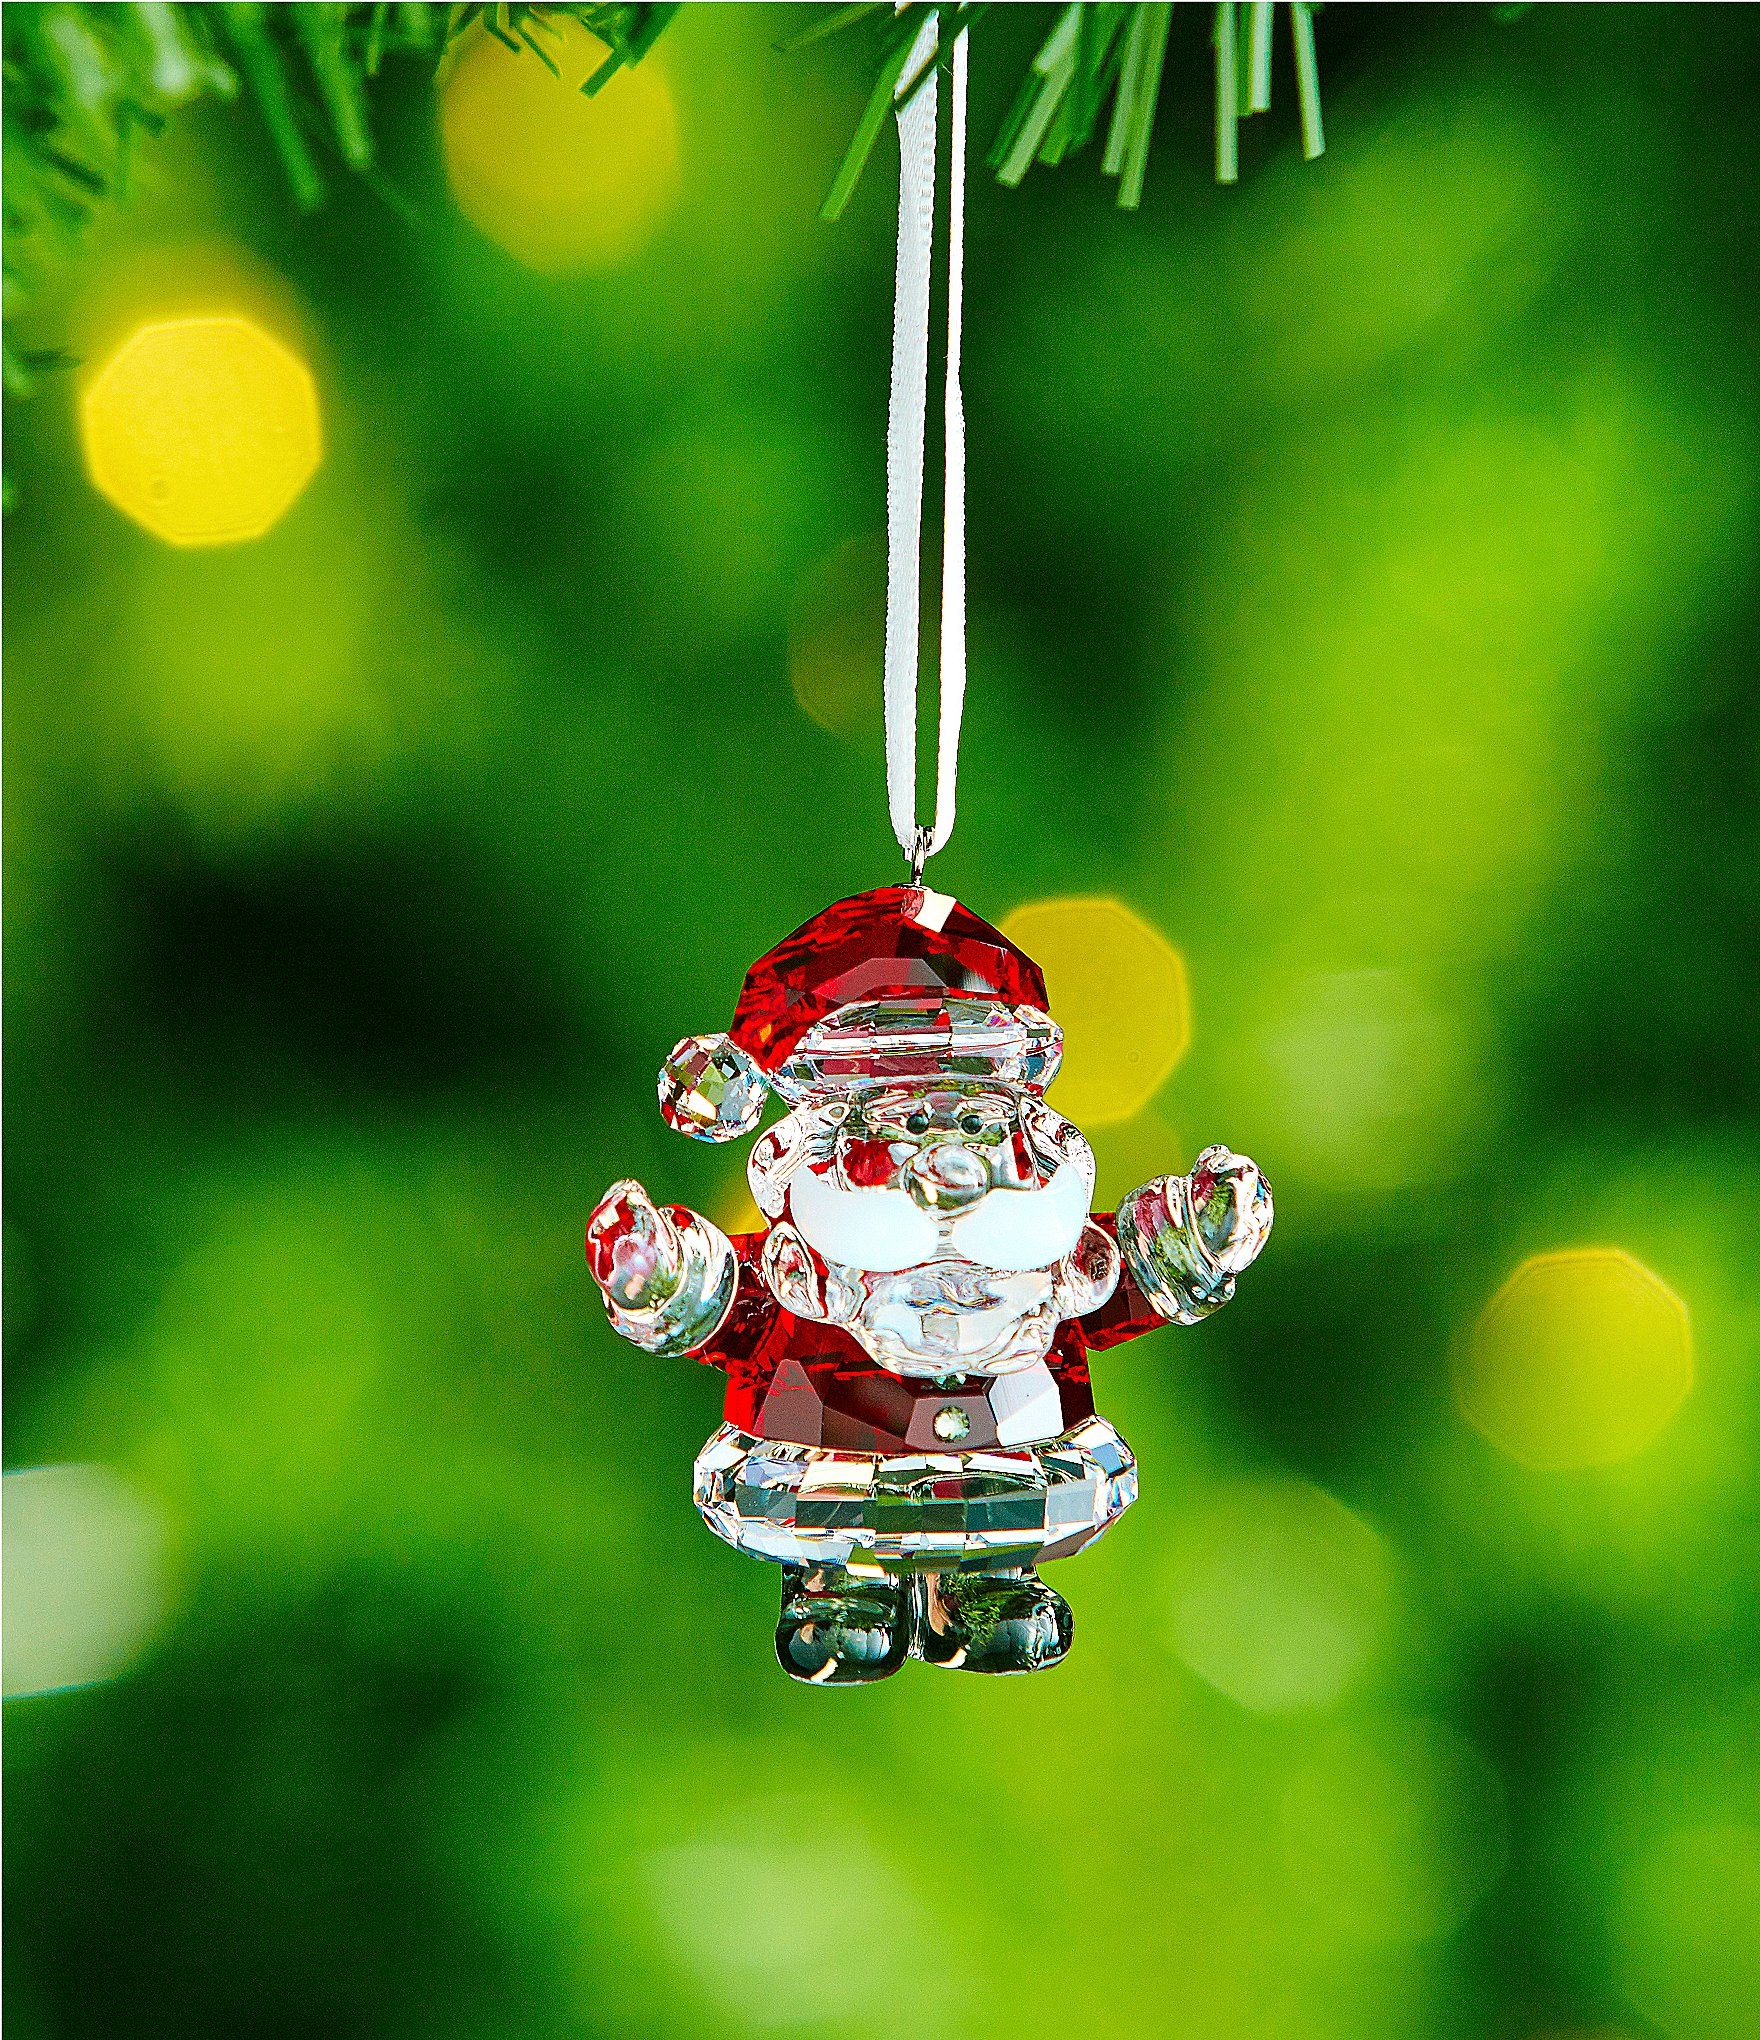 Swarovski Crystal Santa Claus Ornament Dillards